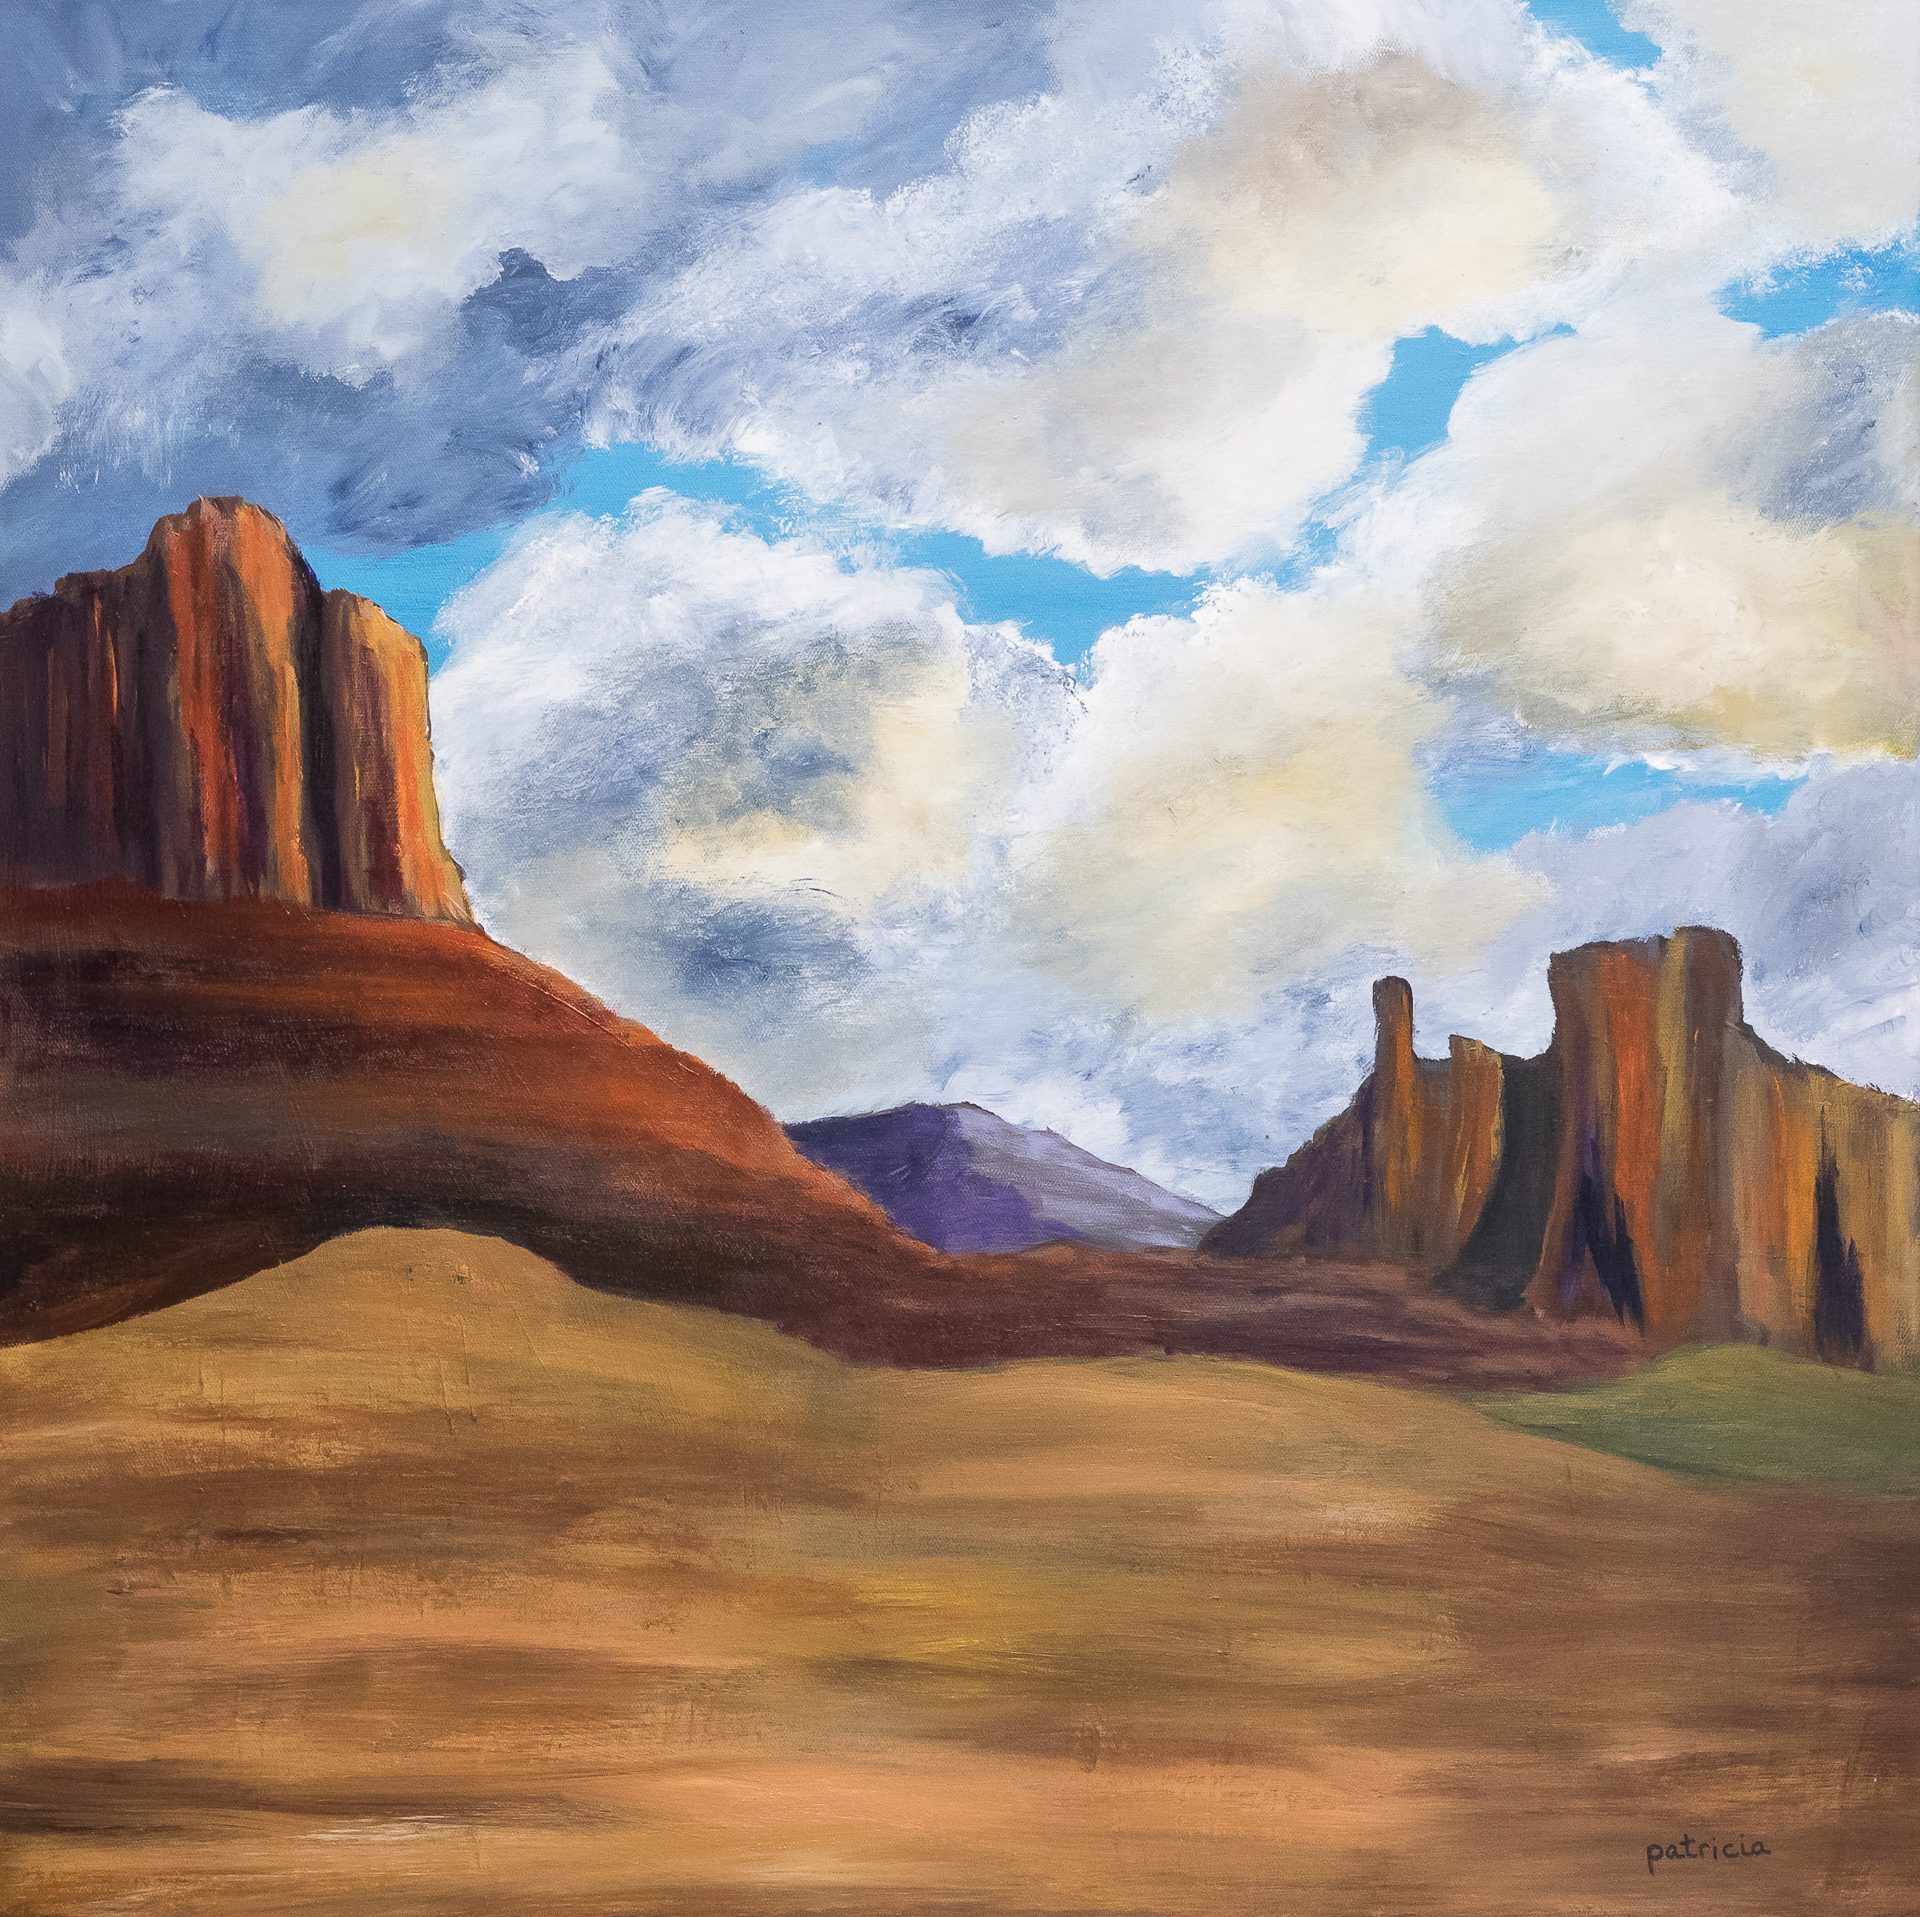 An acrylic painting of the desert with a mountain in the middle of the painting.